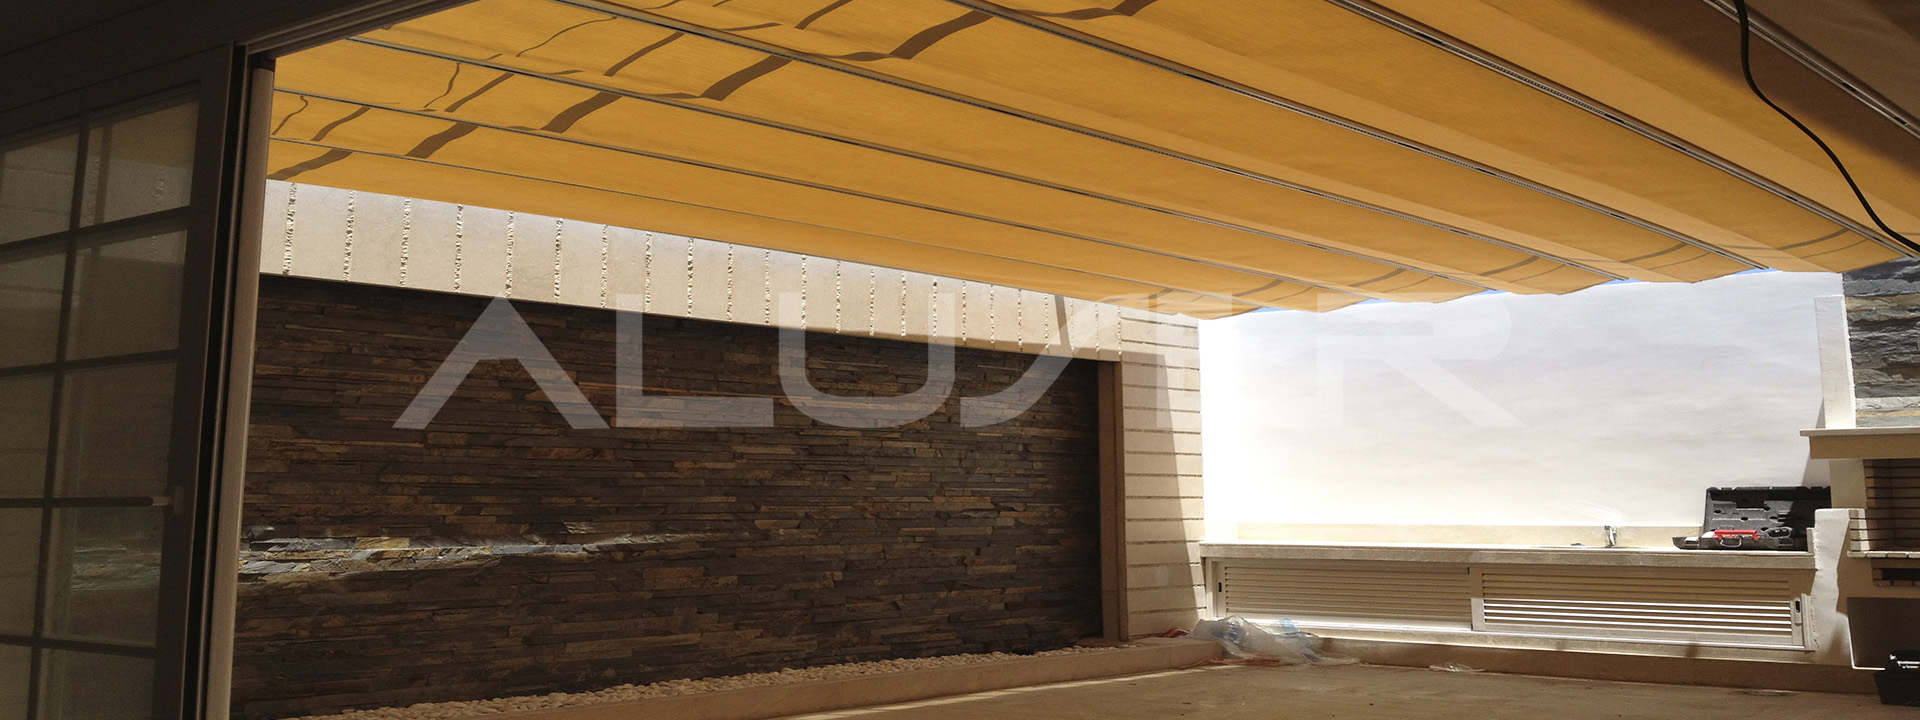 Toldo con luces led